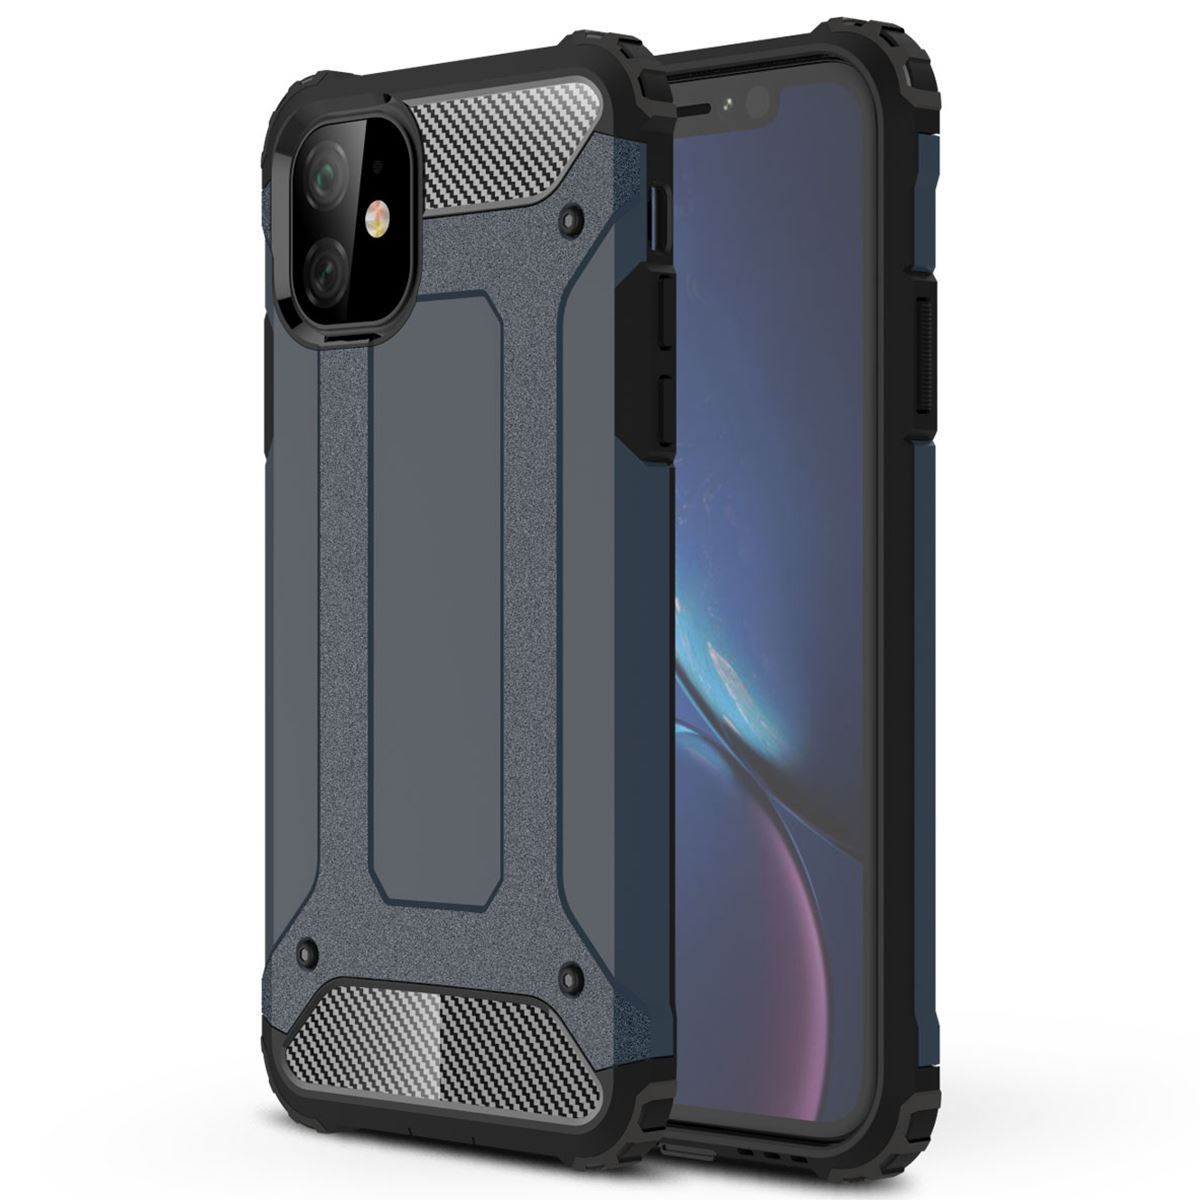 iPhone 11 Case Shockproof Protective Cover - Black